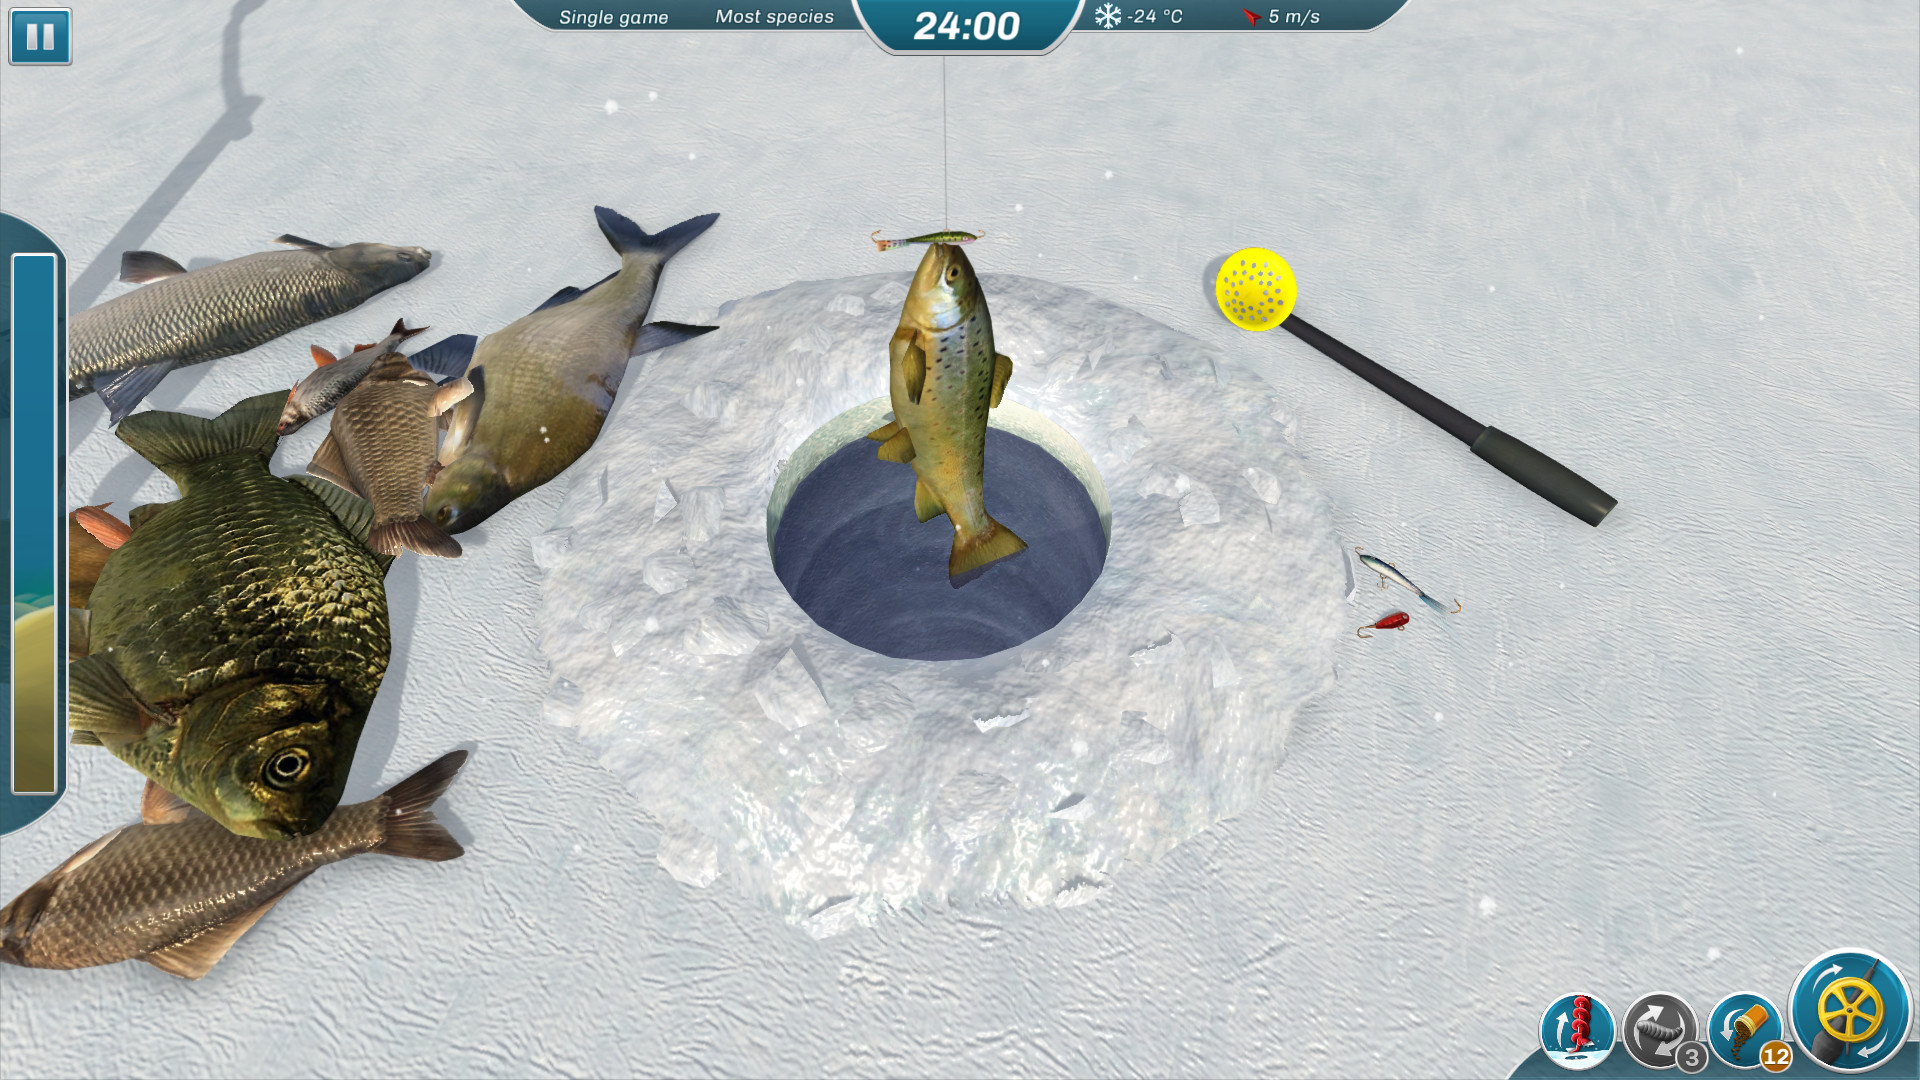 Ice lakes failmid for Ice fishing games free